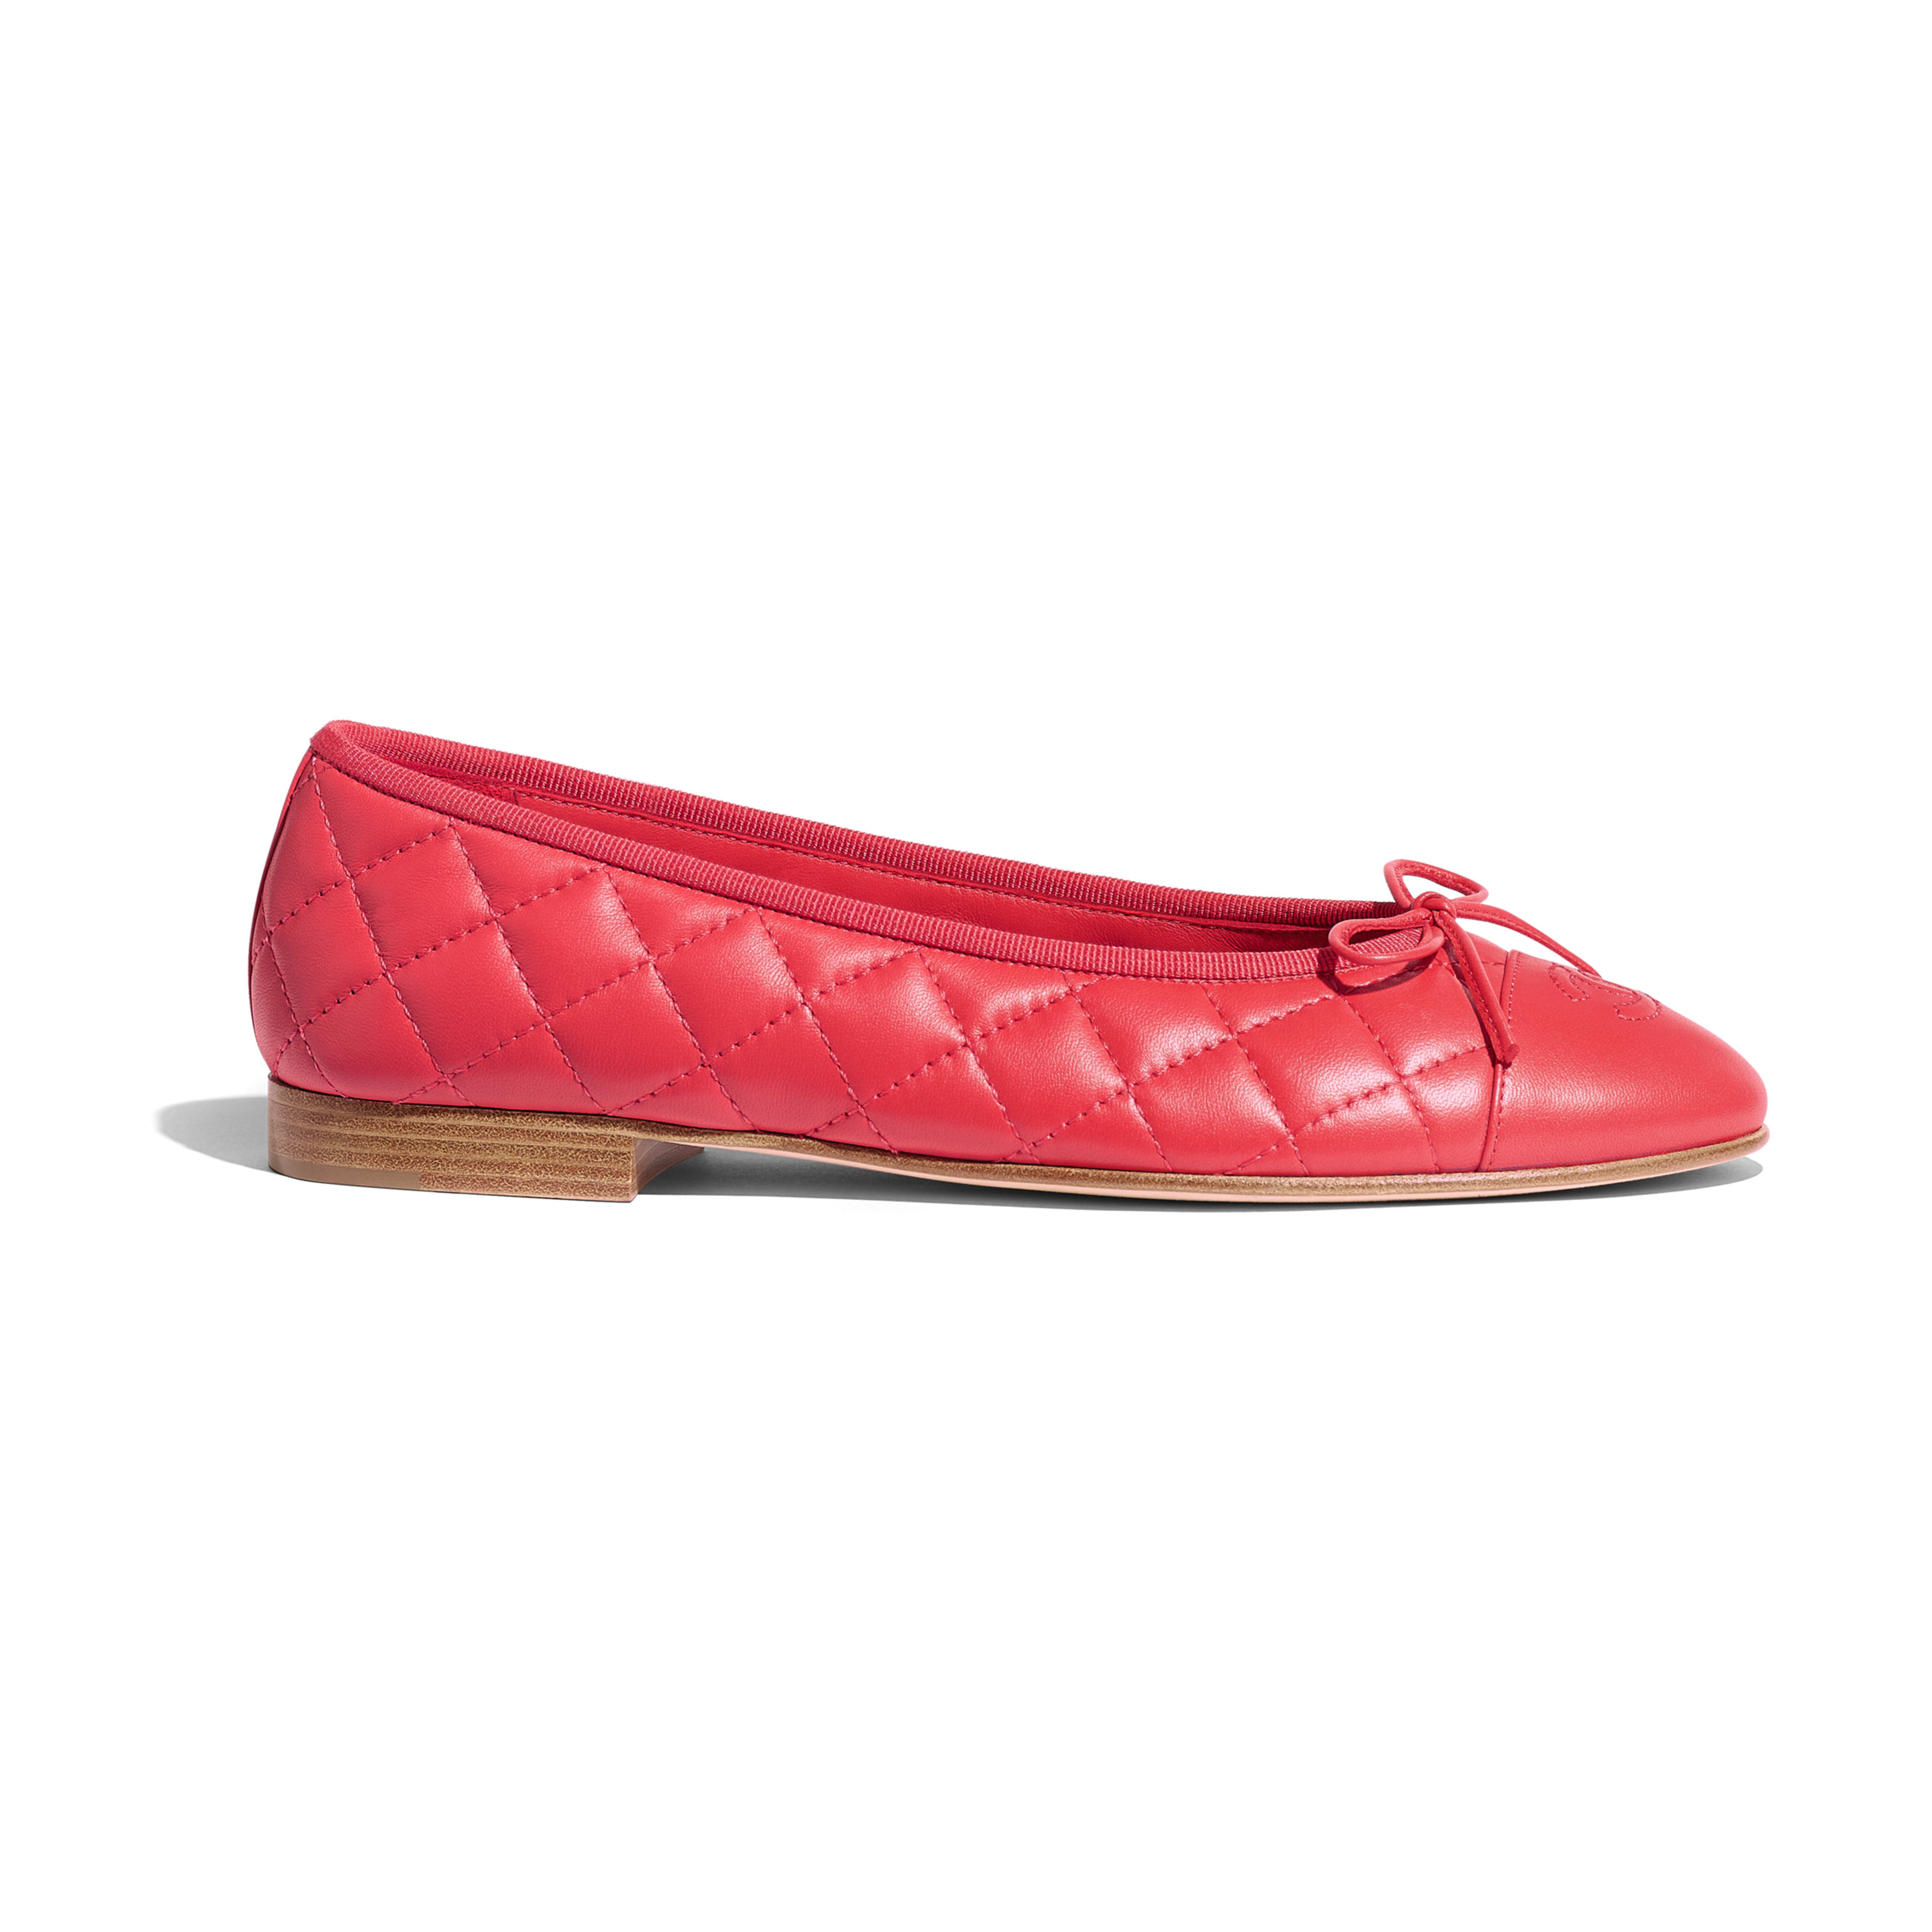 Ballerinas - Red - Lambskin - Default view - see full sized version